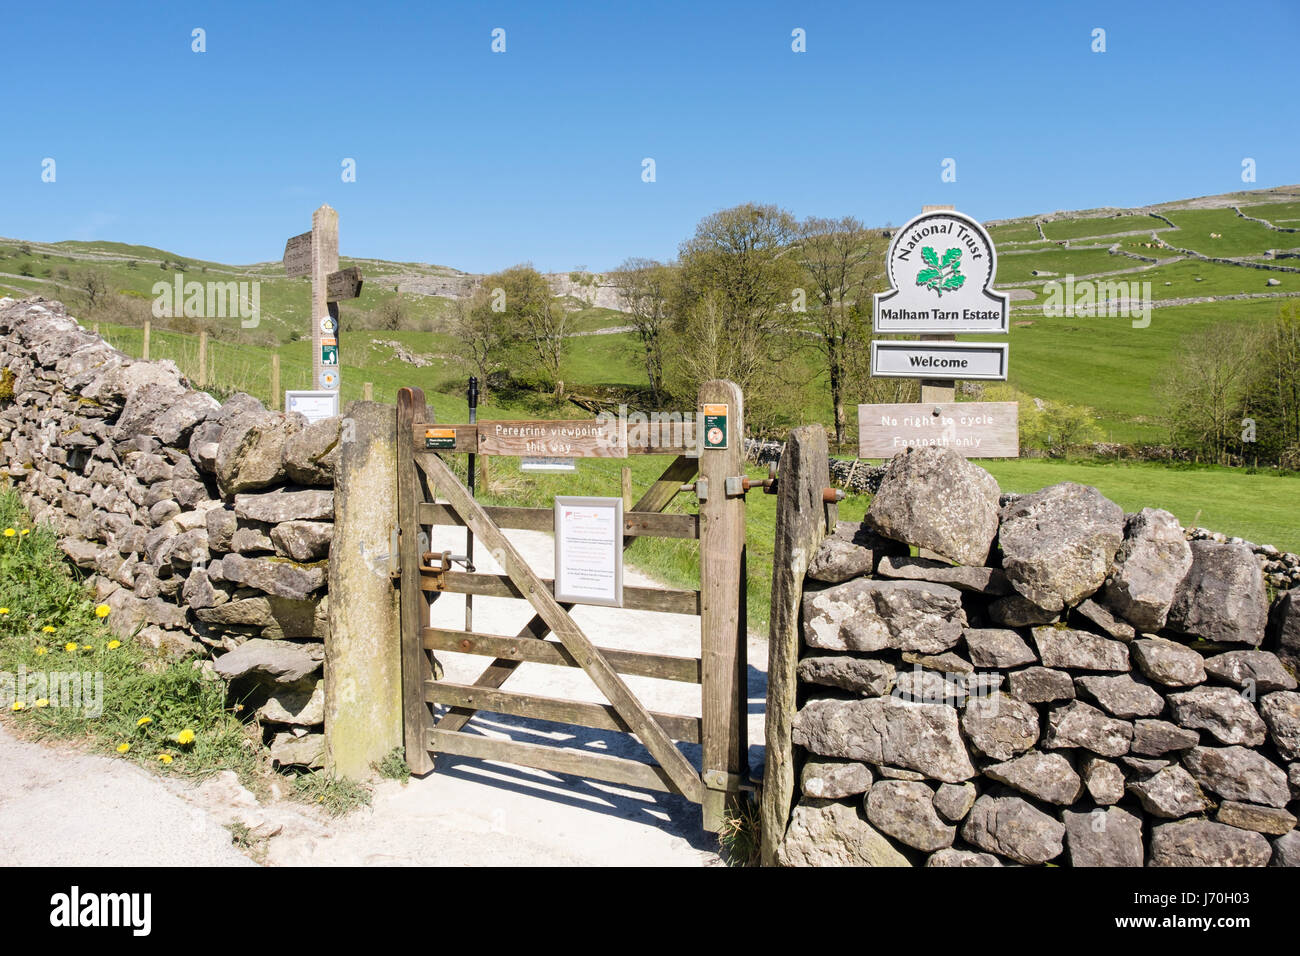 Gate and footpath access to Peregrine viewpoint at Malham Cove following Pennine Way. Malham Yorkshire Dales National - Stock Image